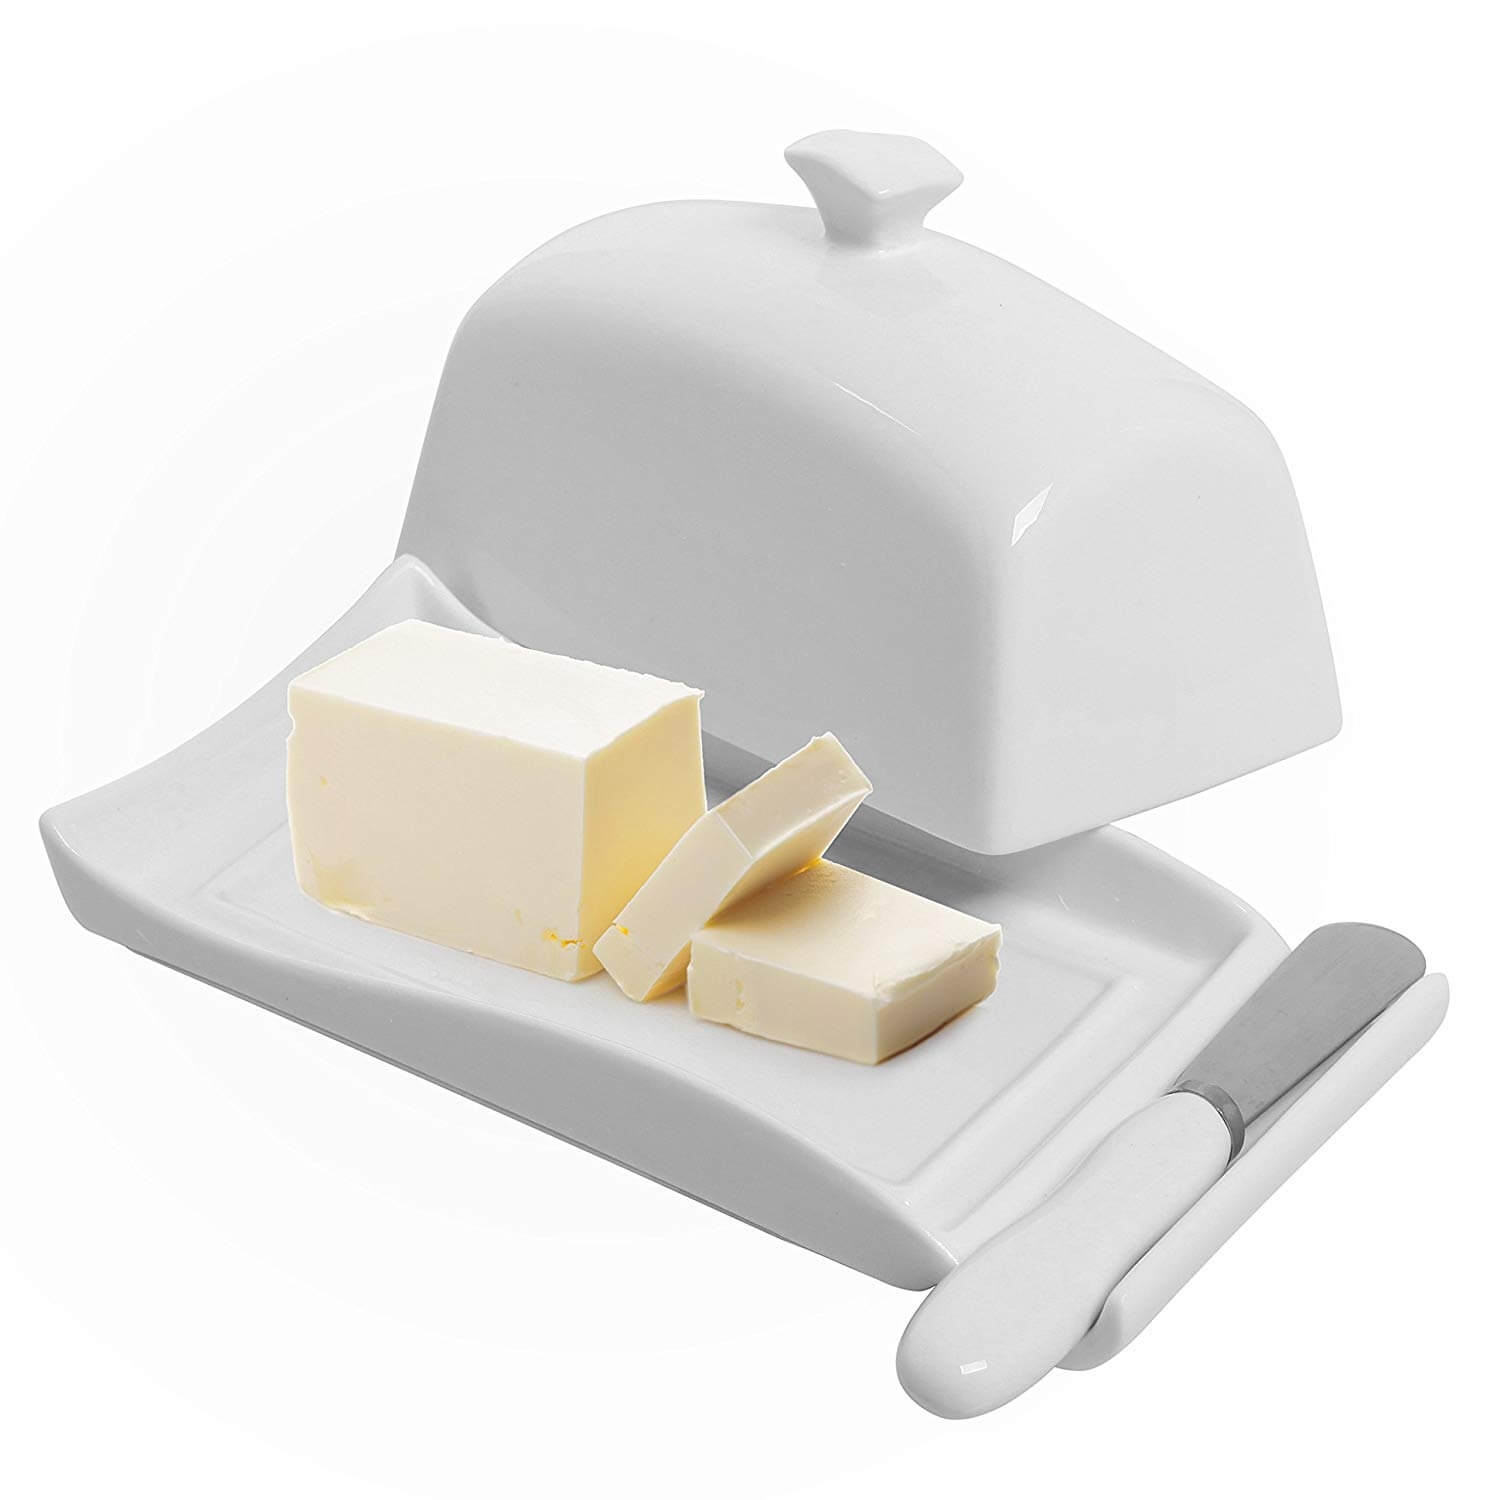 My Gift Decorative White Ceramic Lidded Butter Dish